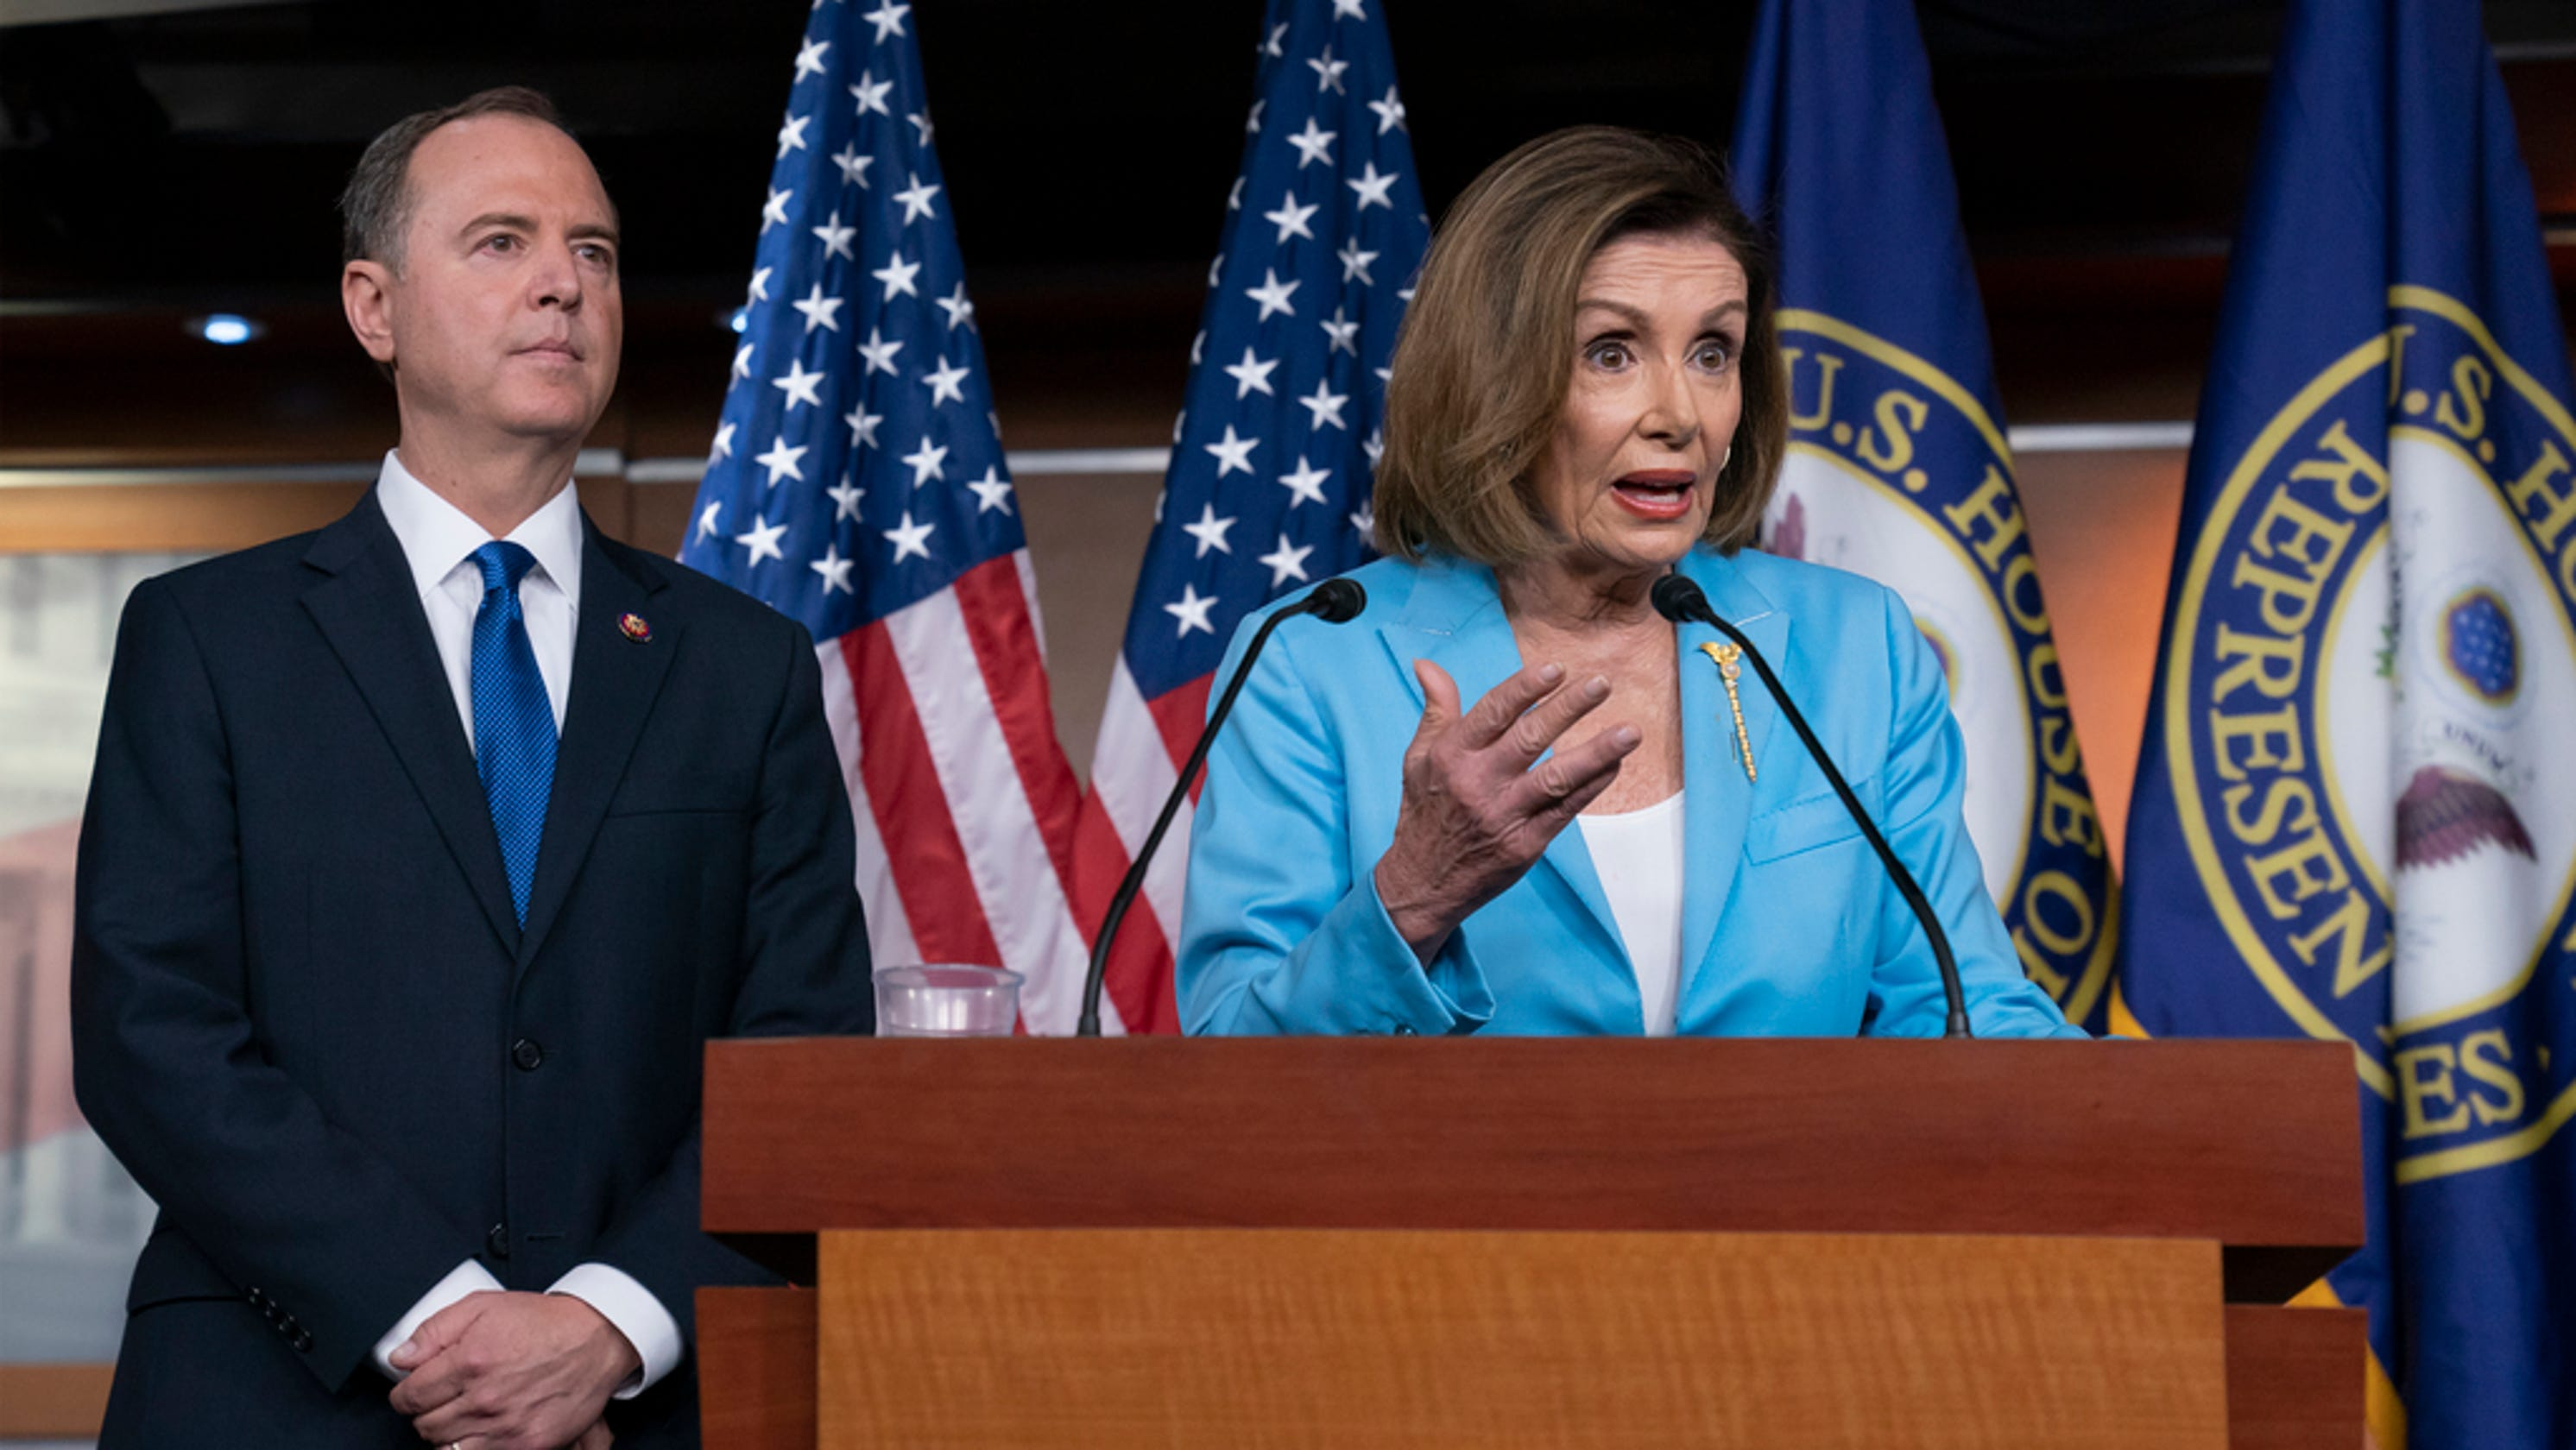 Can Members Of Congress Be Impeached? Trump Wants Pelosi